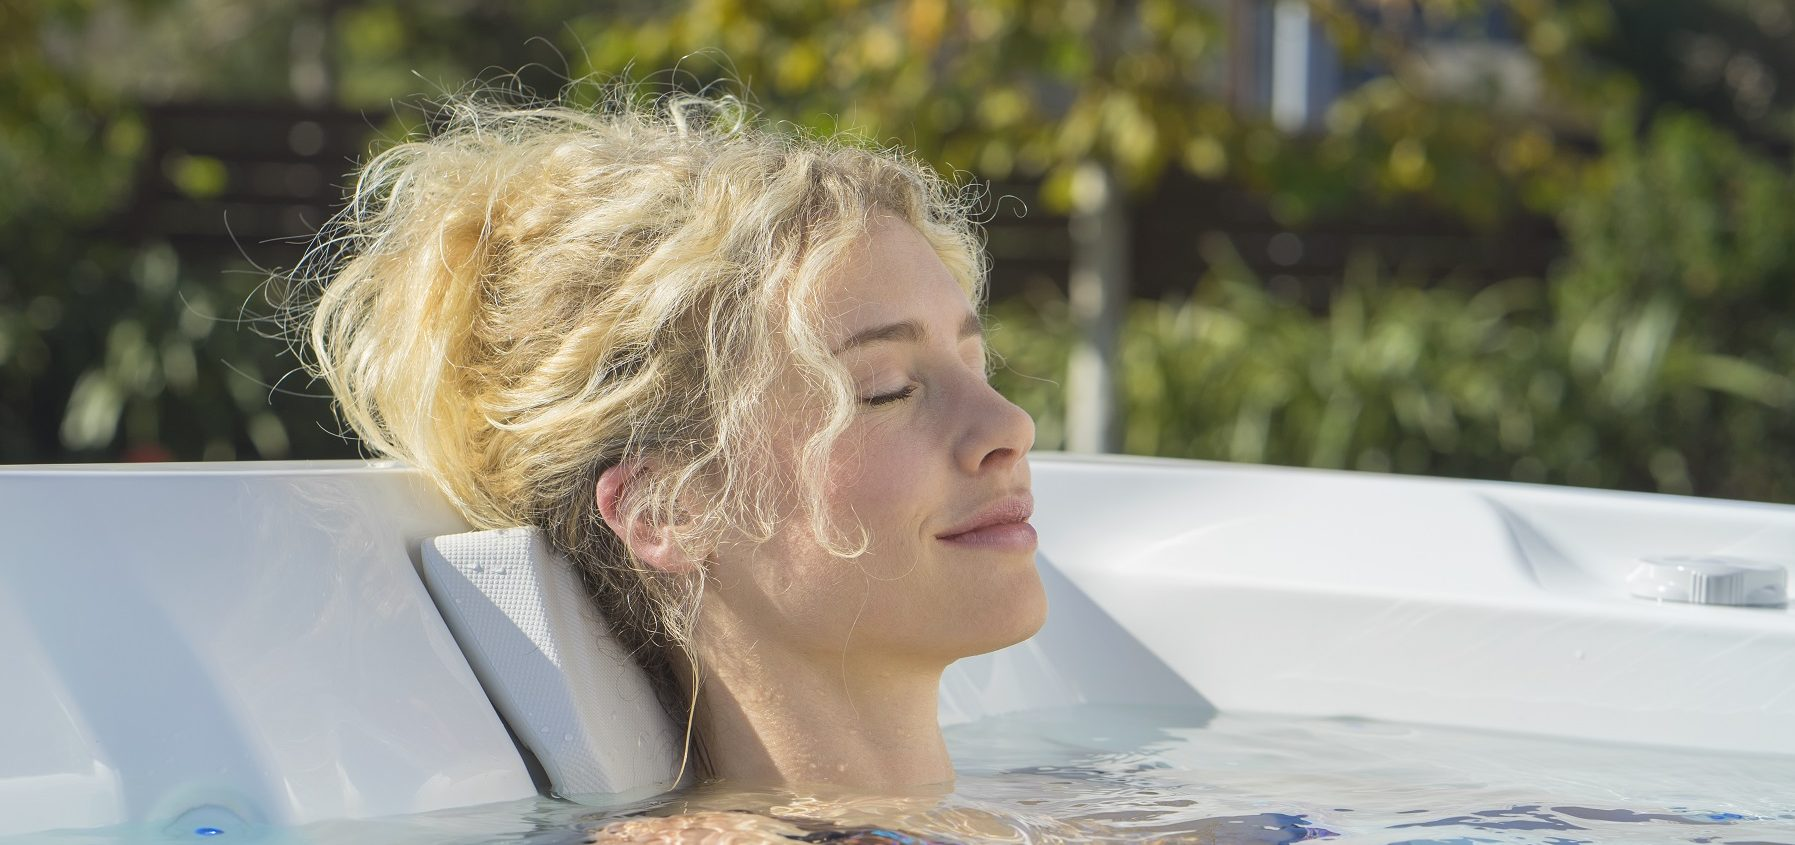 5 Hot Tub Health Benefits You Never Knew About